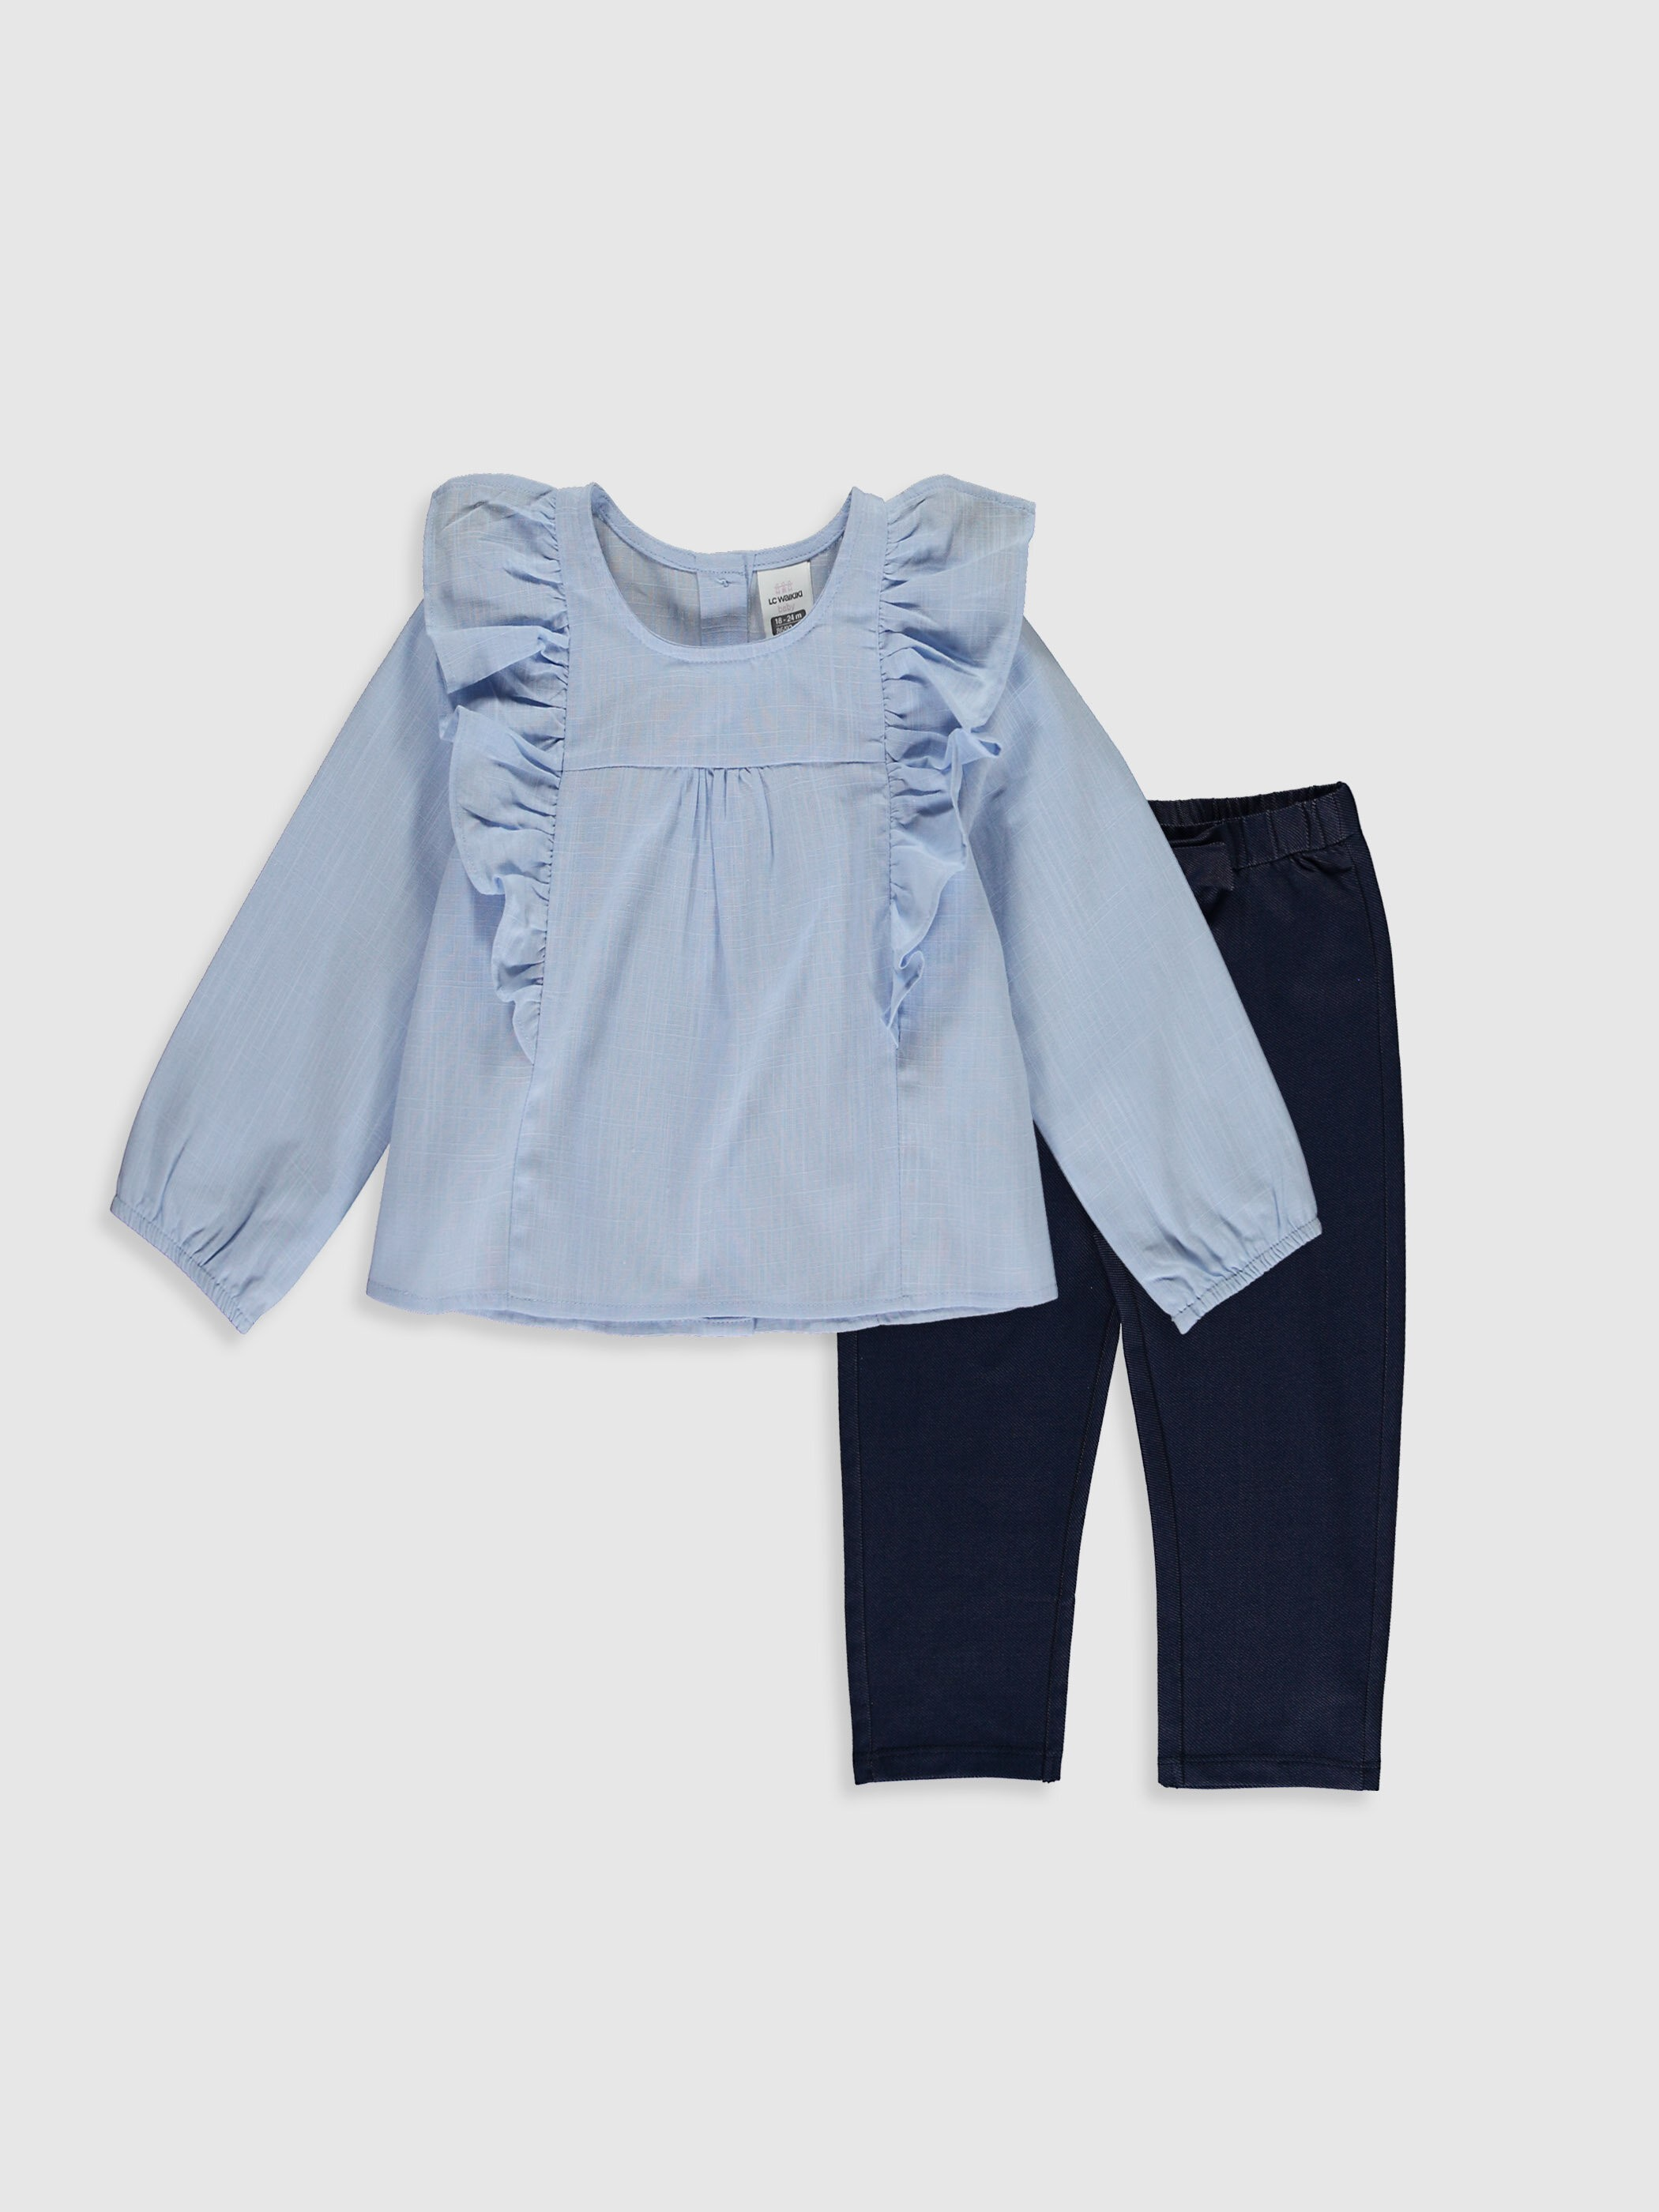 BLUE - 2-pack Baby Girl's Set - 0WAL70Z1